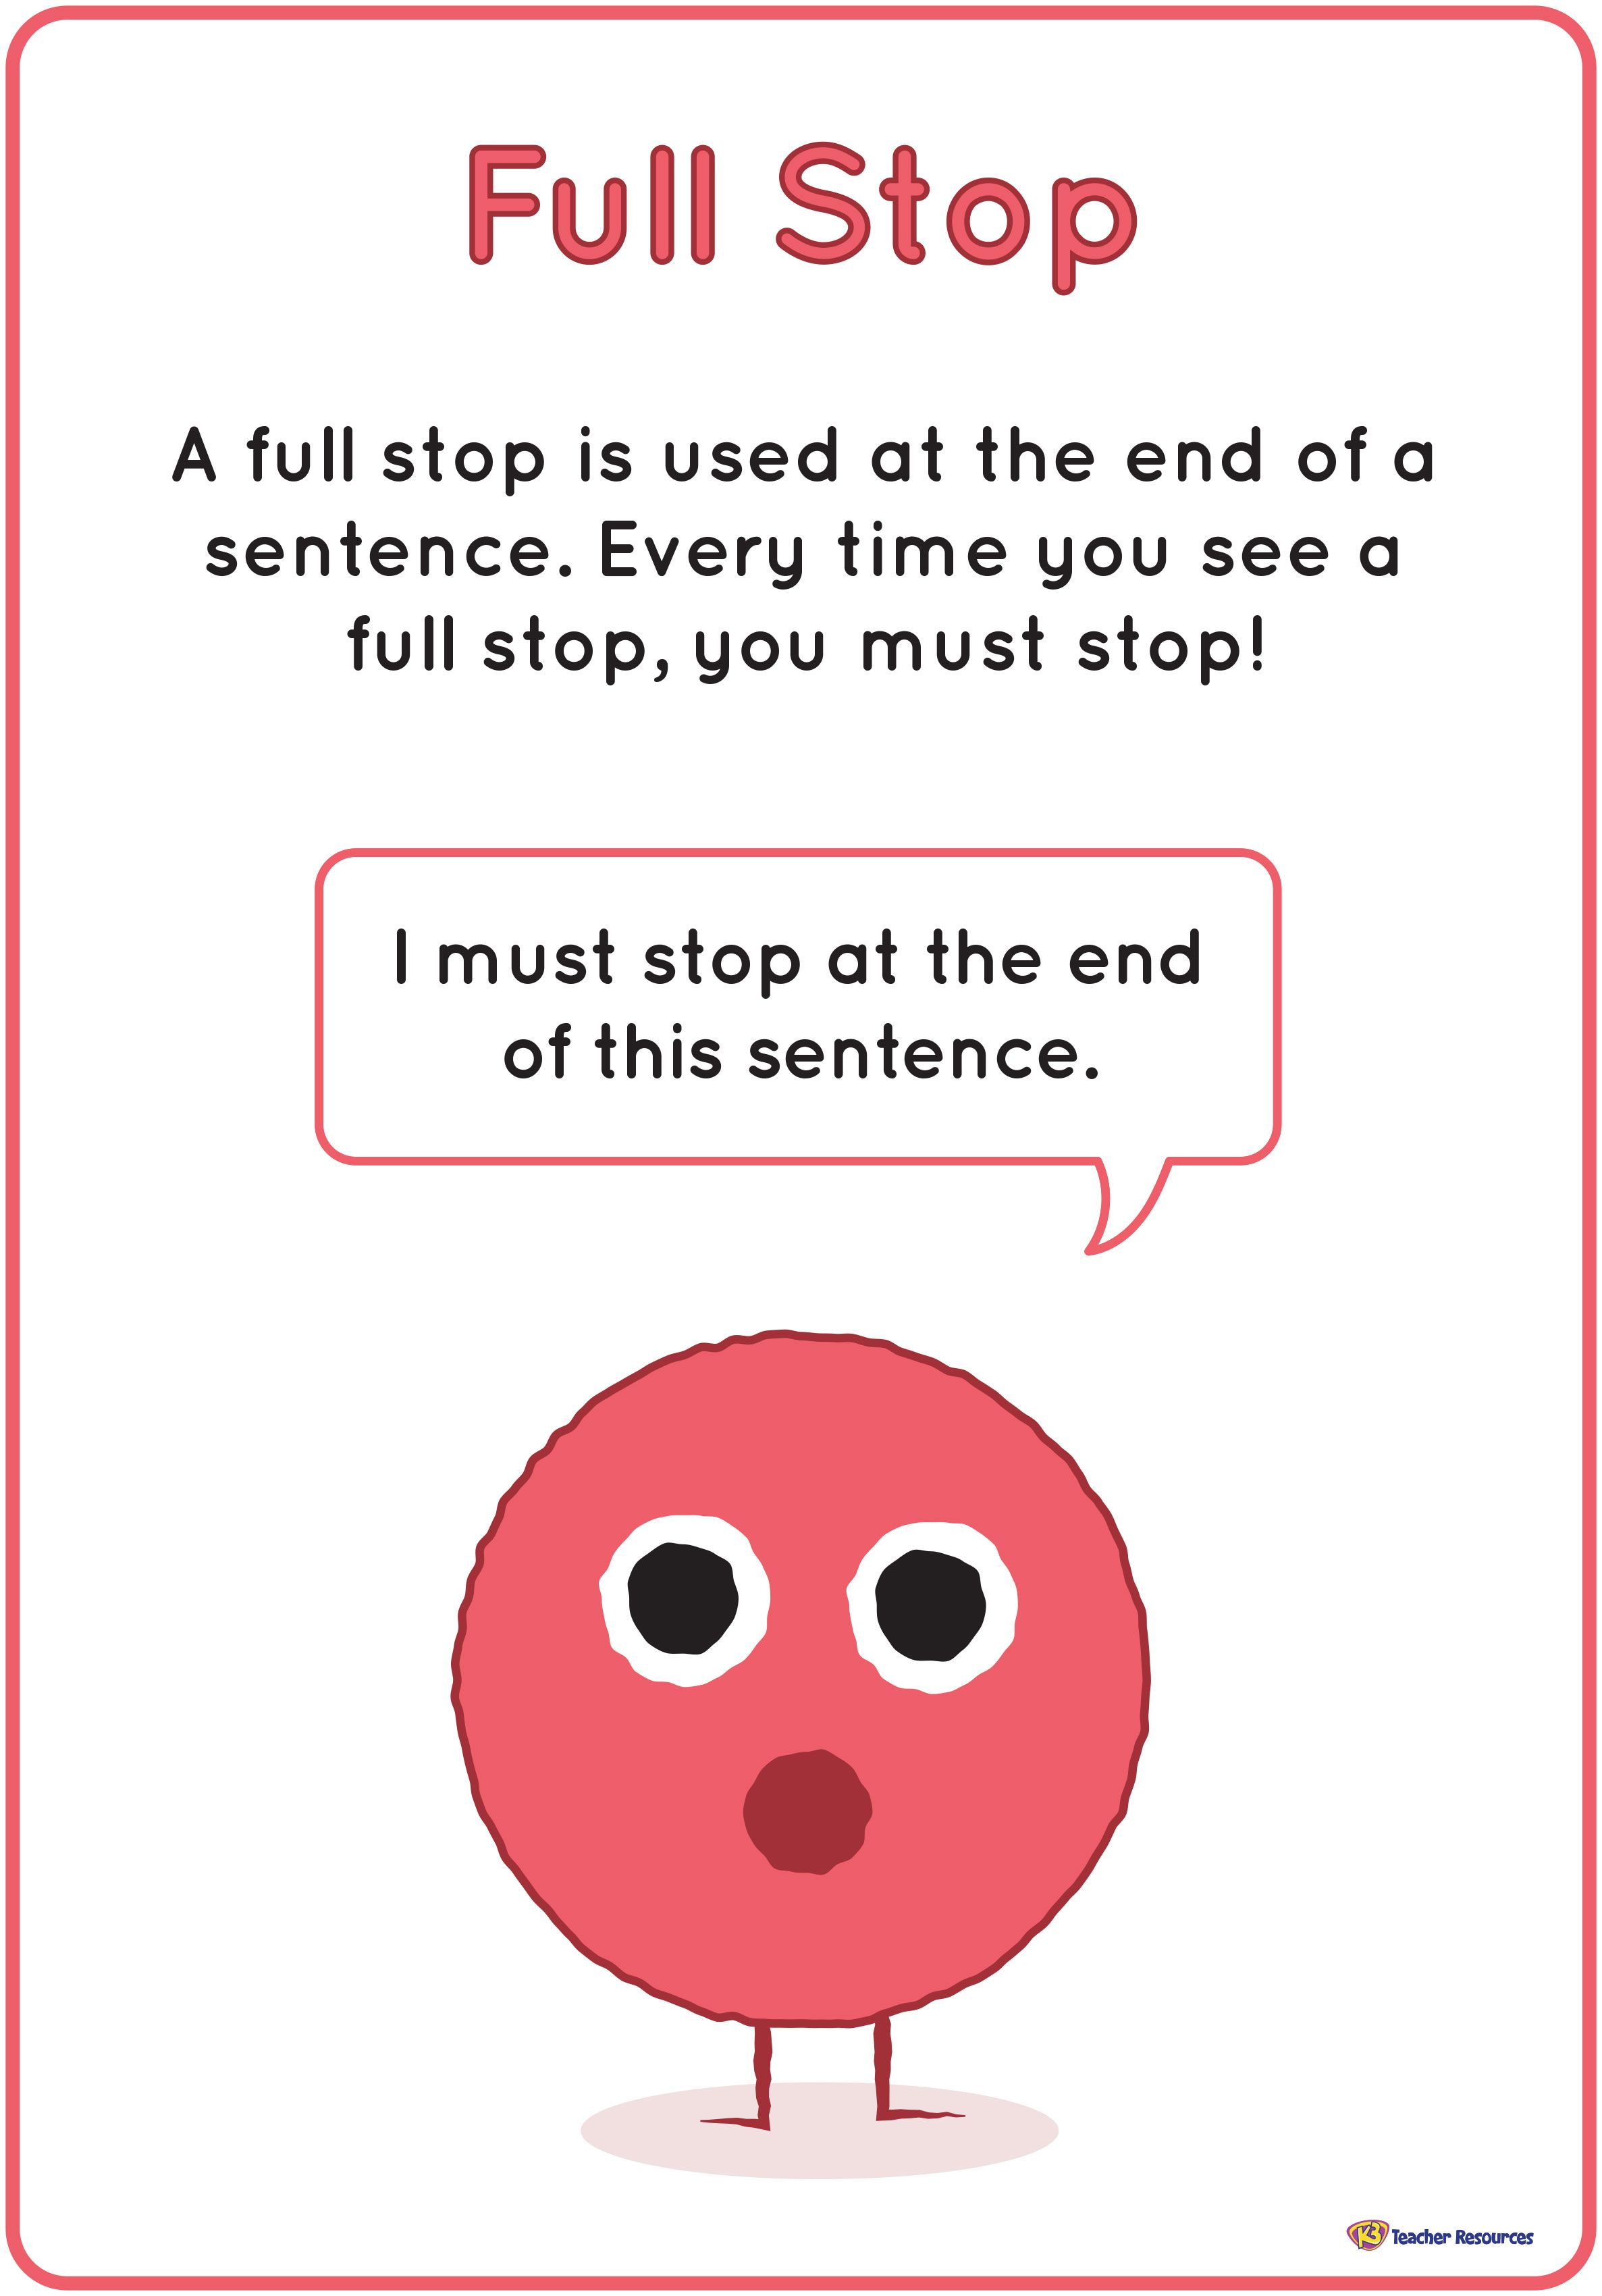 Image Result For Images Of Full Stop